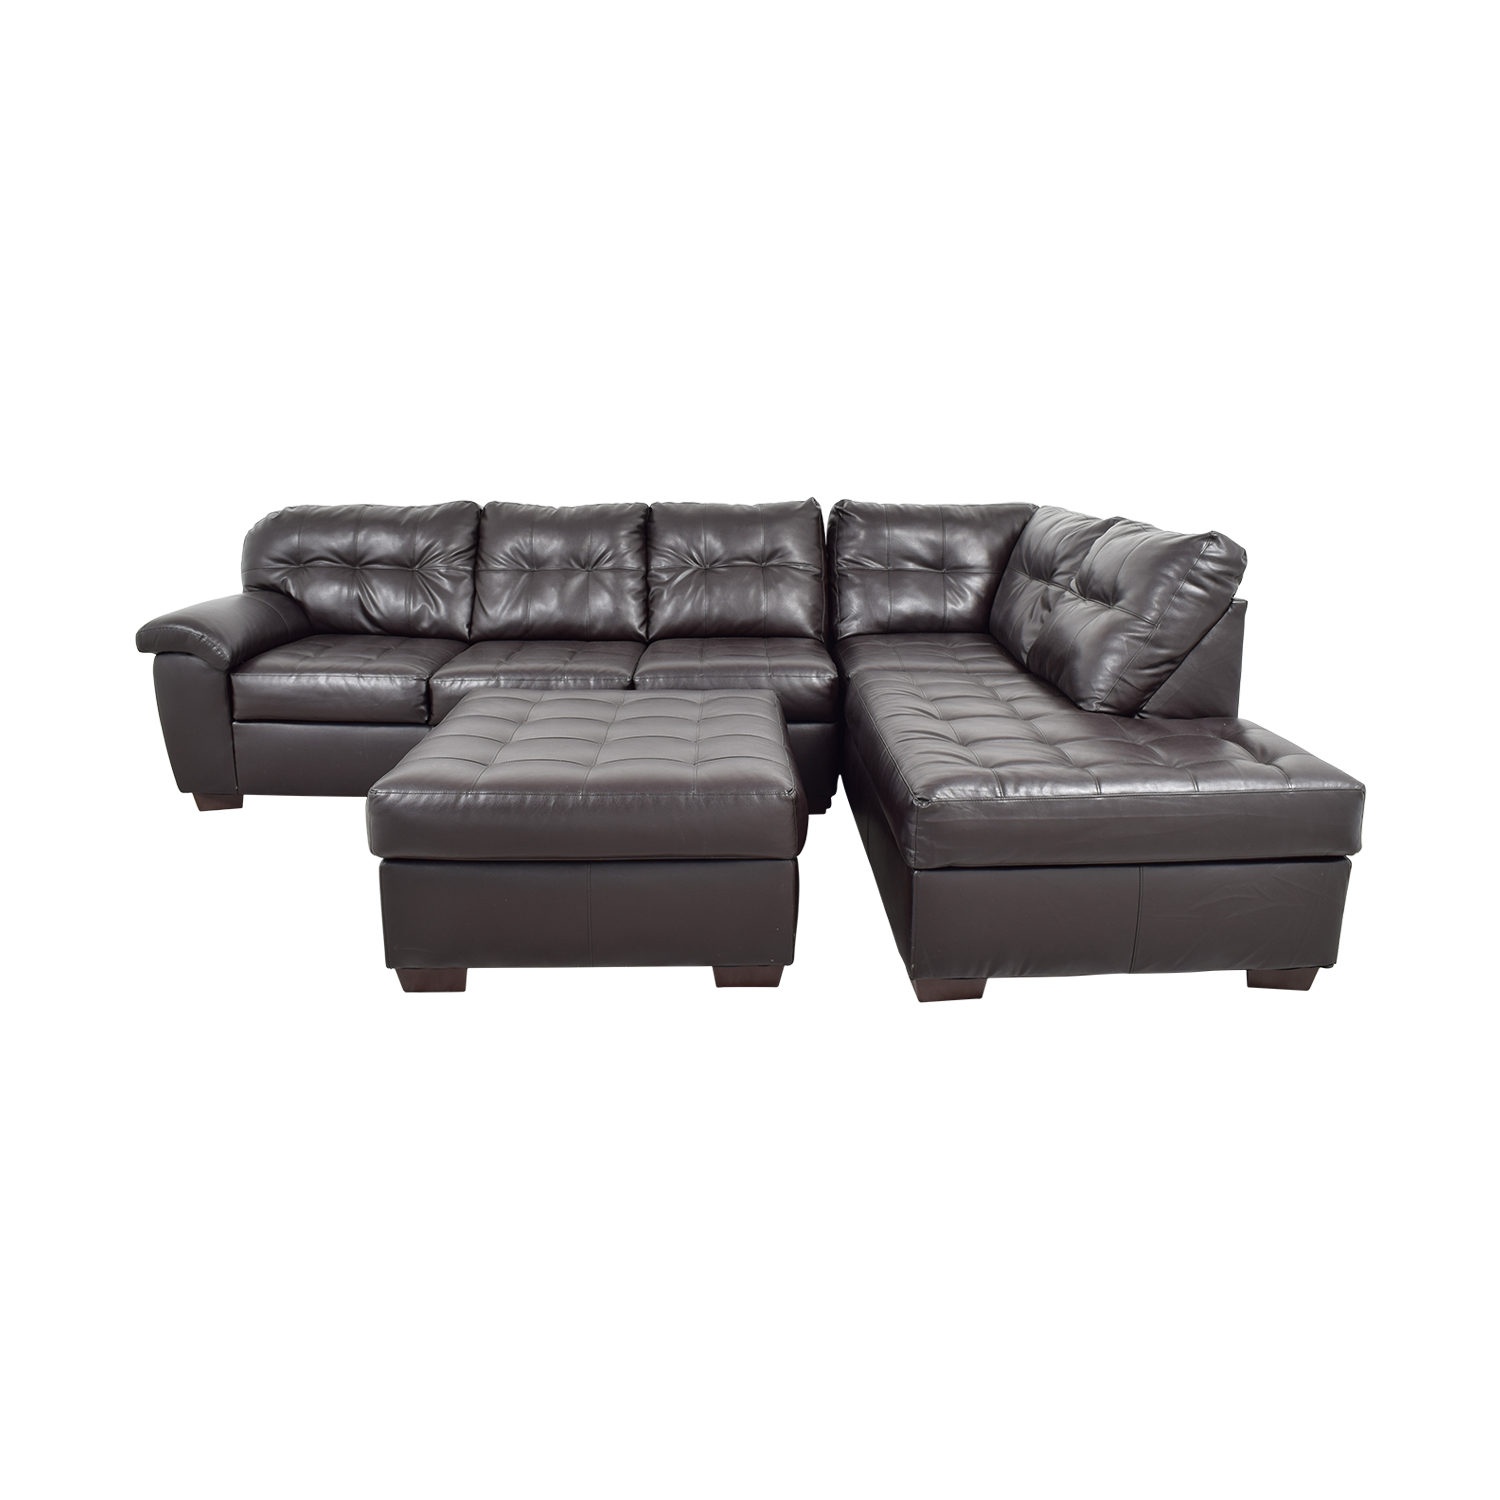 shop Simmons Brown Leather Sectional with Ottoman Simmons Sofas